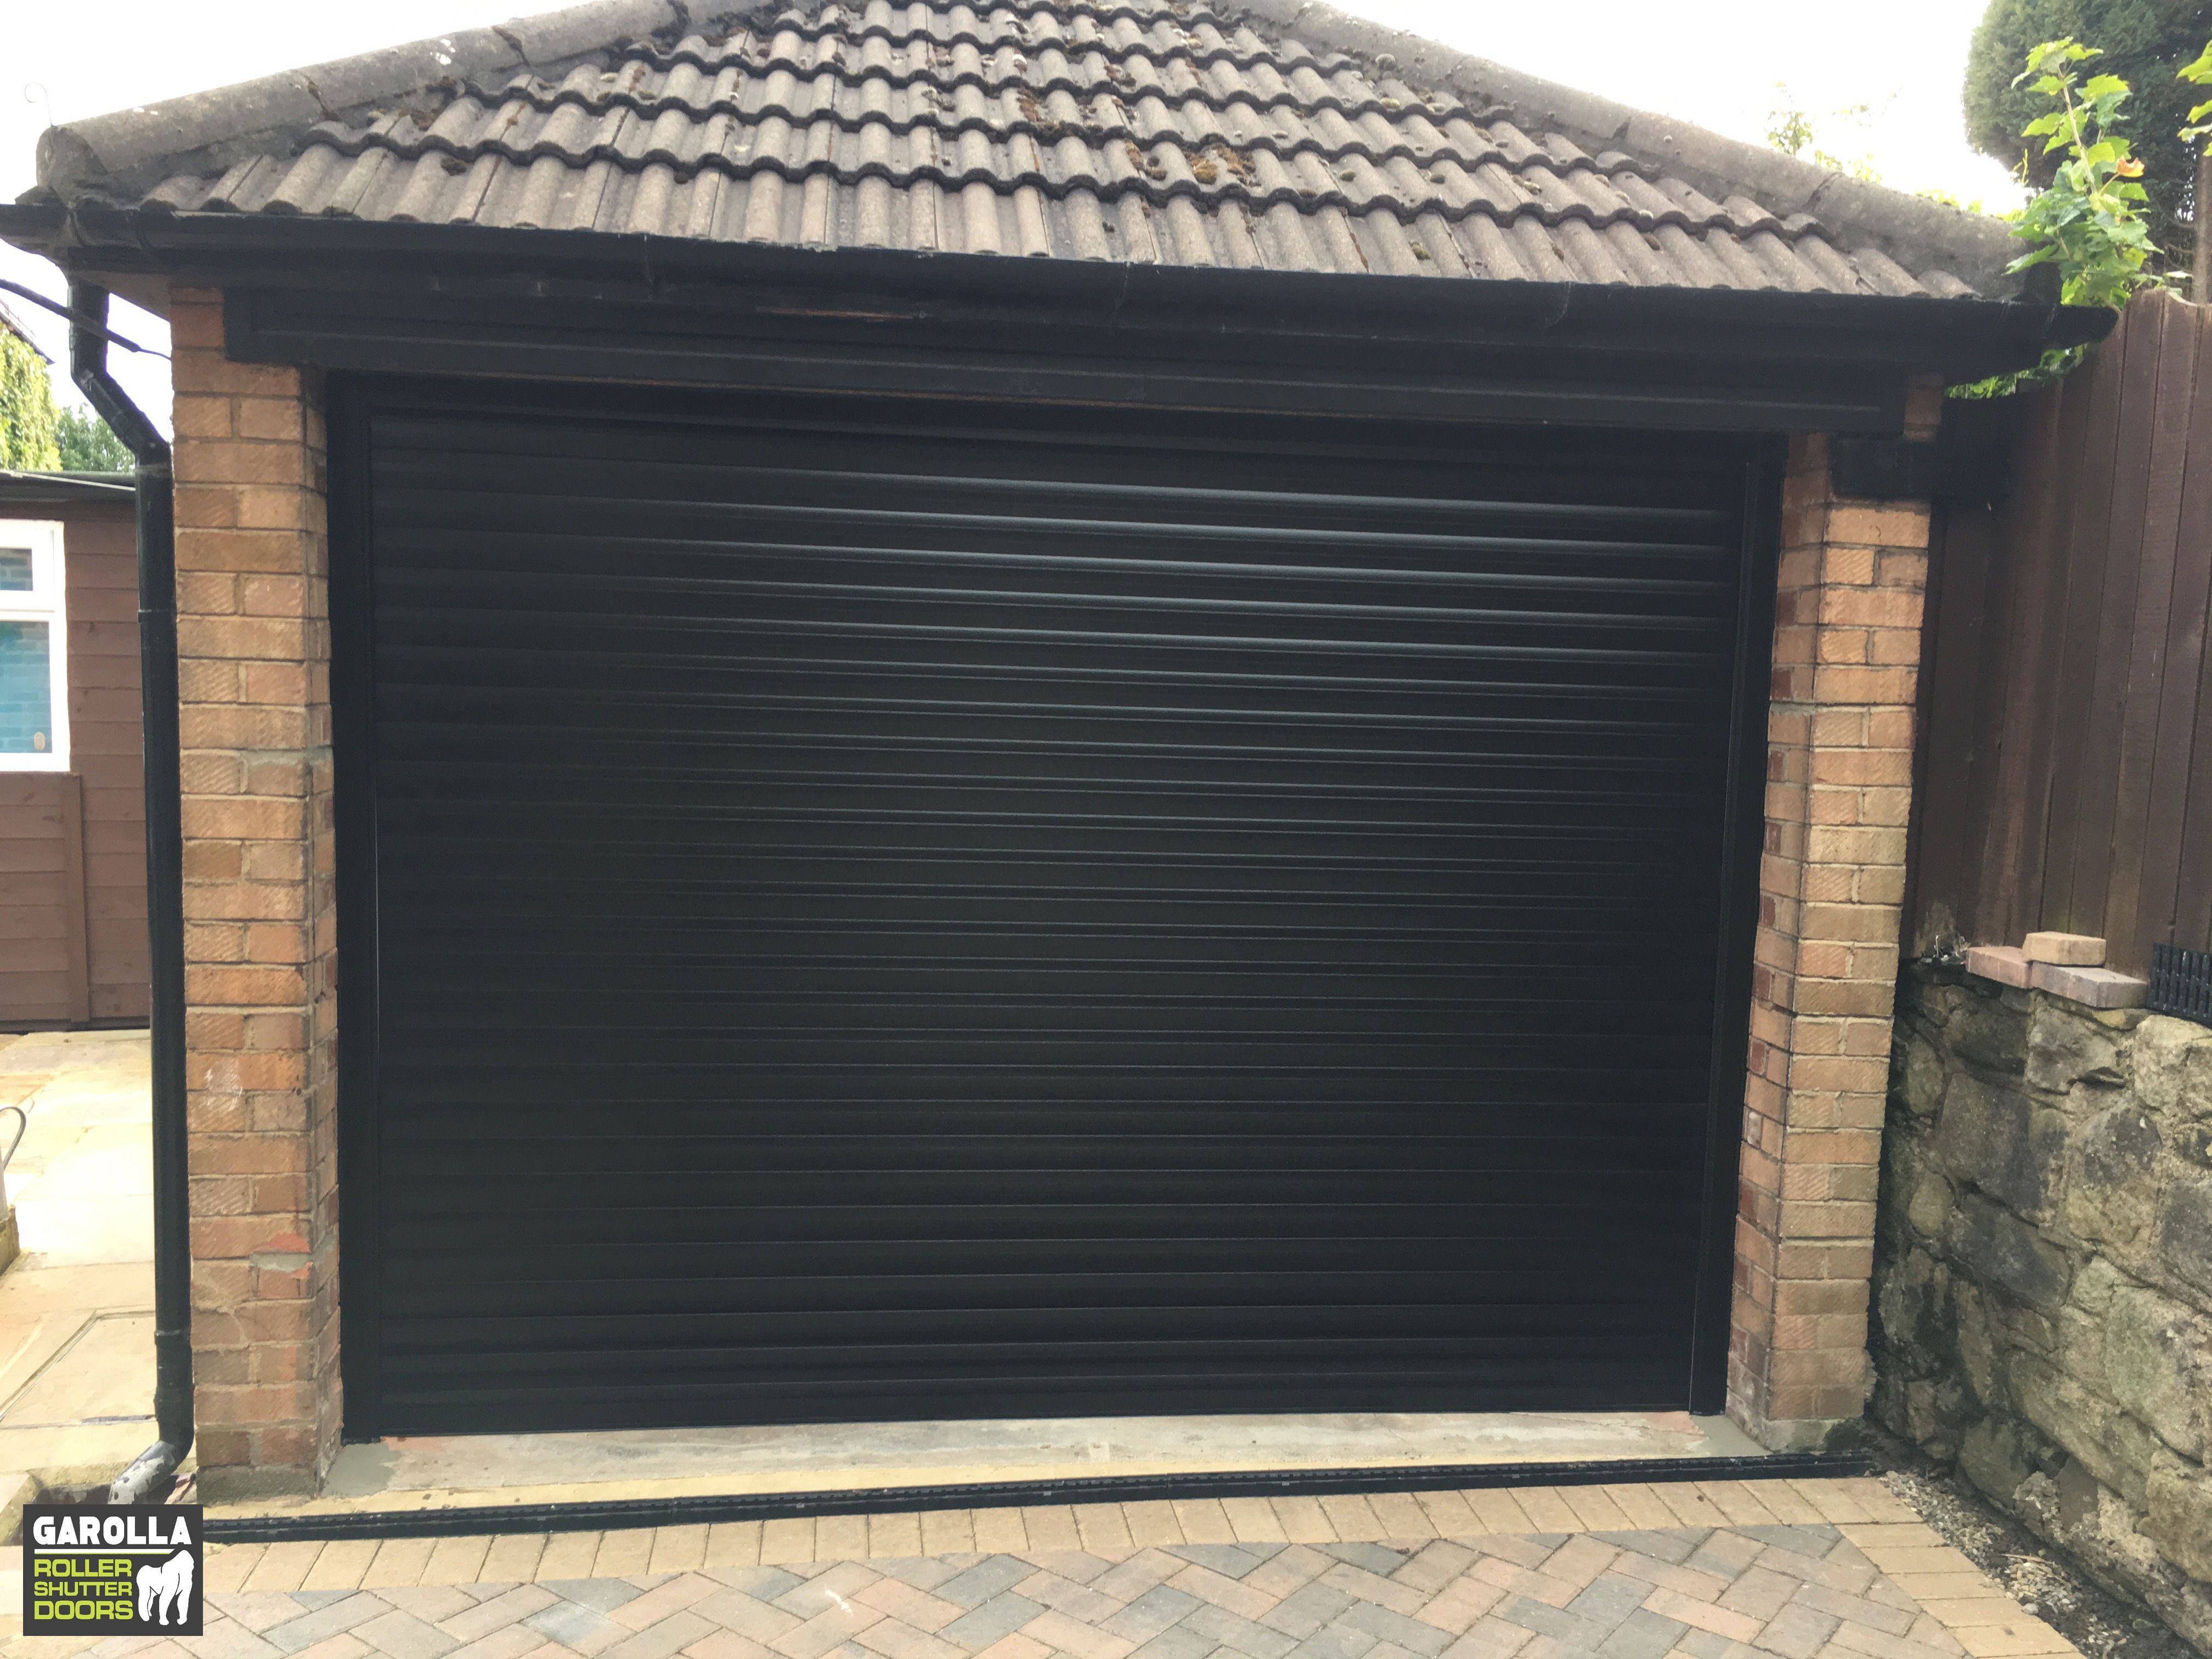 Roller Shutter Garage Door In Black Garage Doors Garage Door Design Garage Door Cost